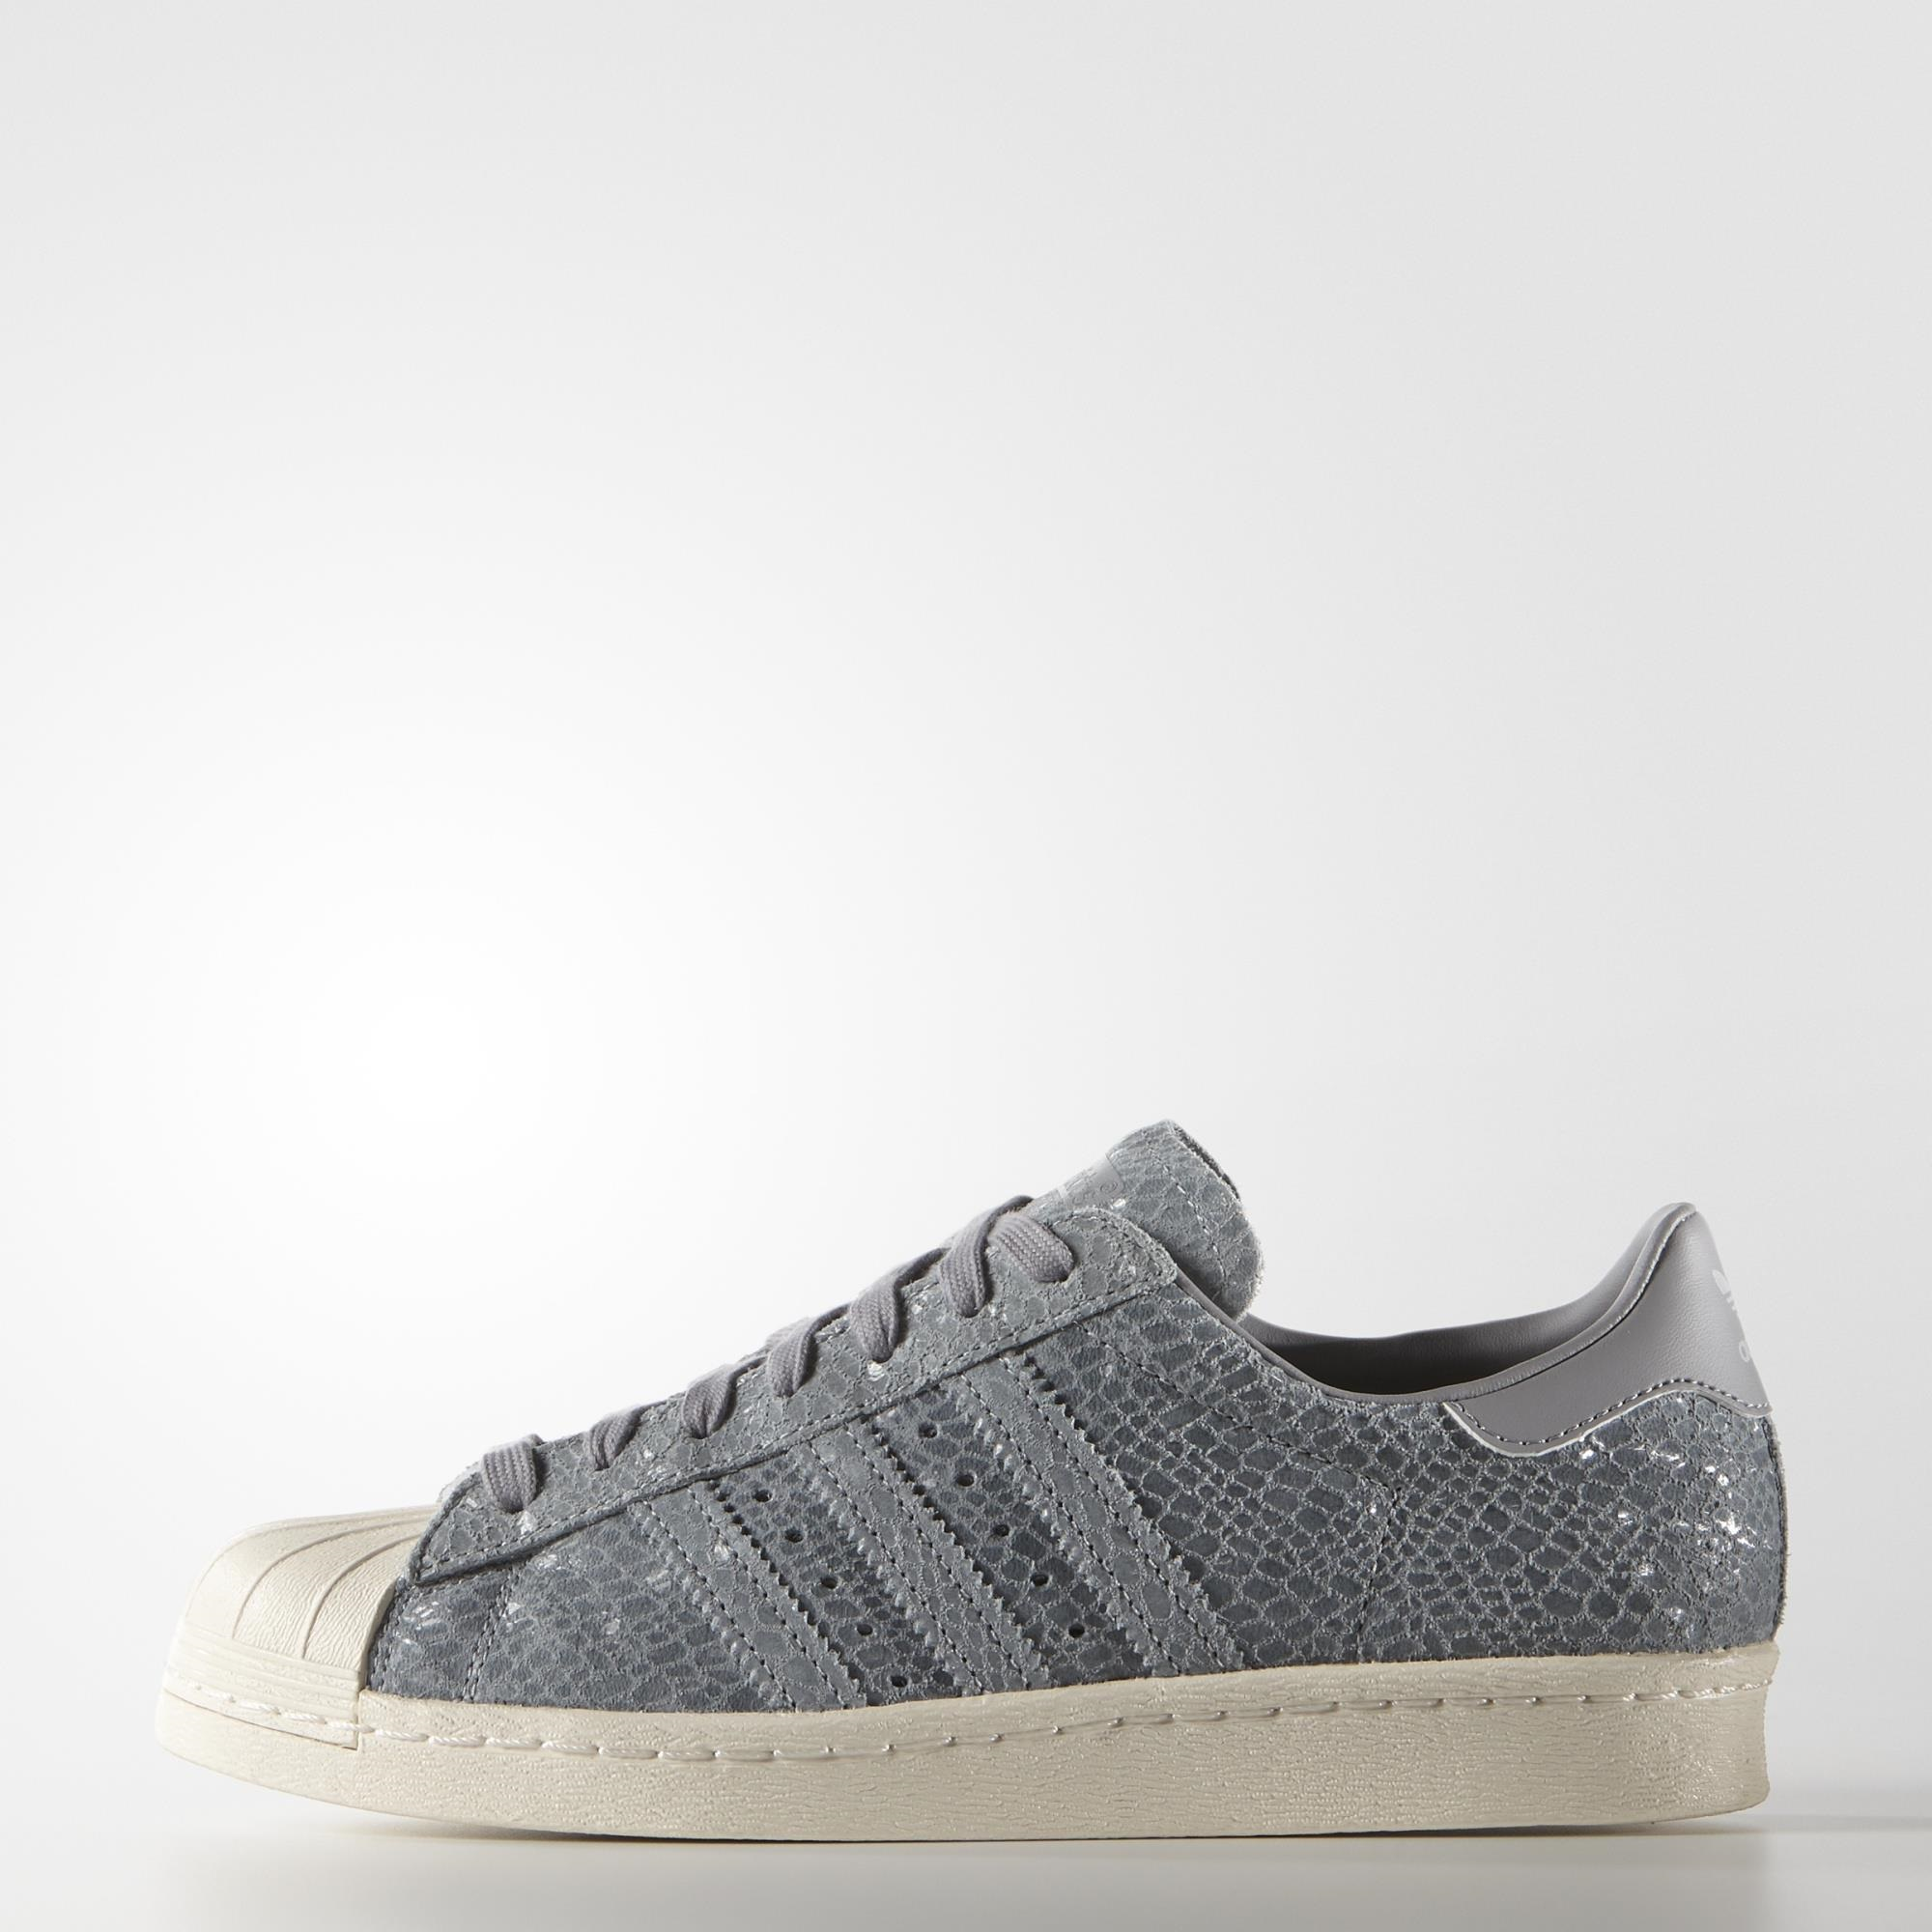 info for 8aacf cec9c adidas Superstar 80s Shoes - Grey | adidas US